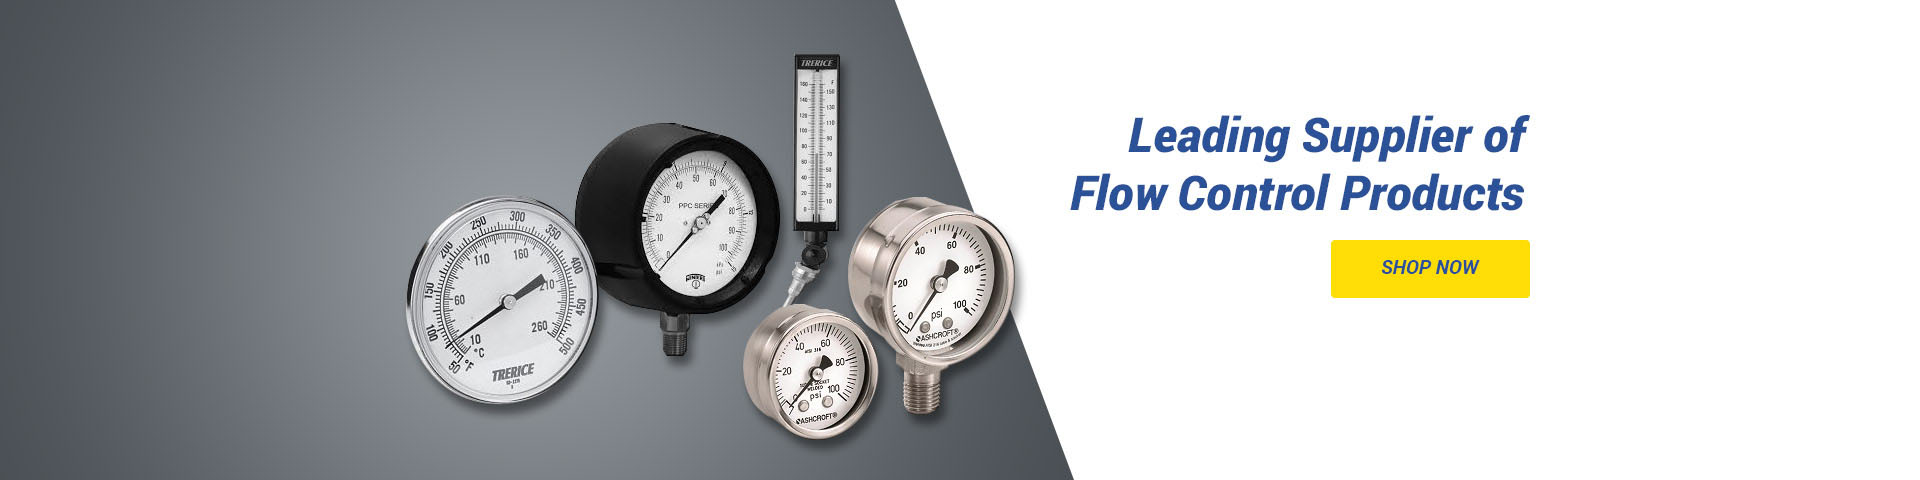 Leading Supplier of FLow Control Products